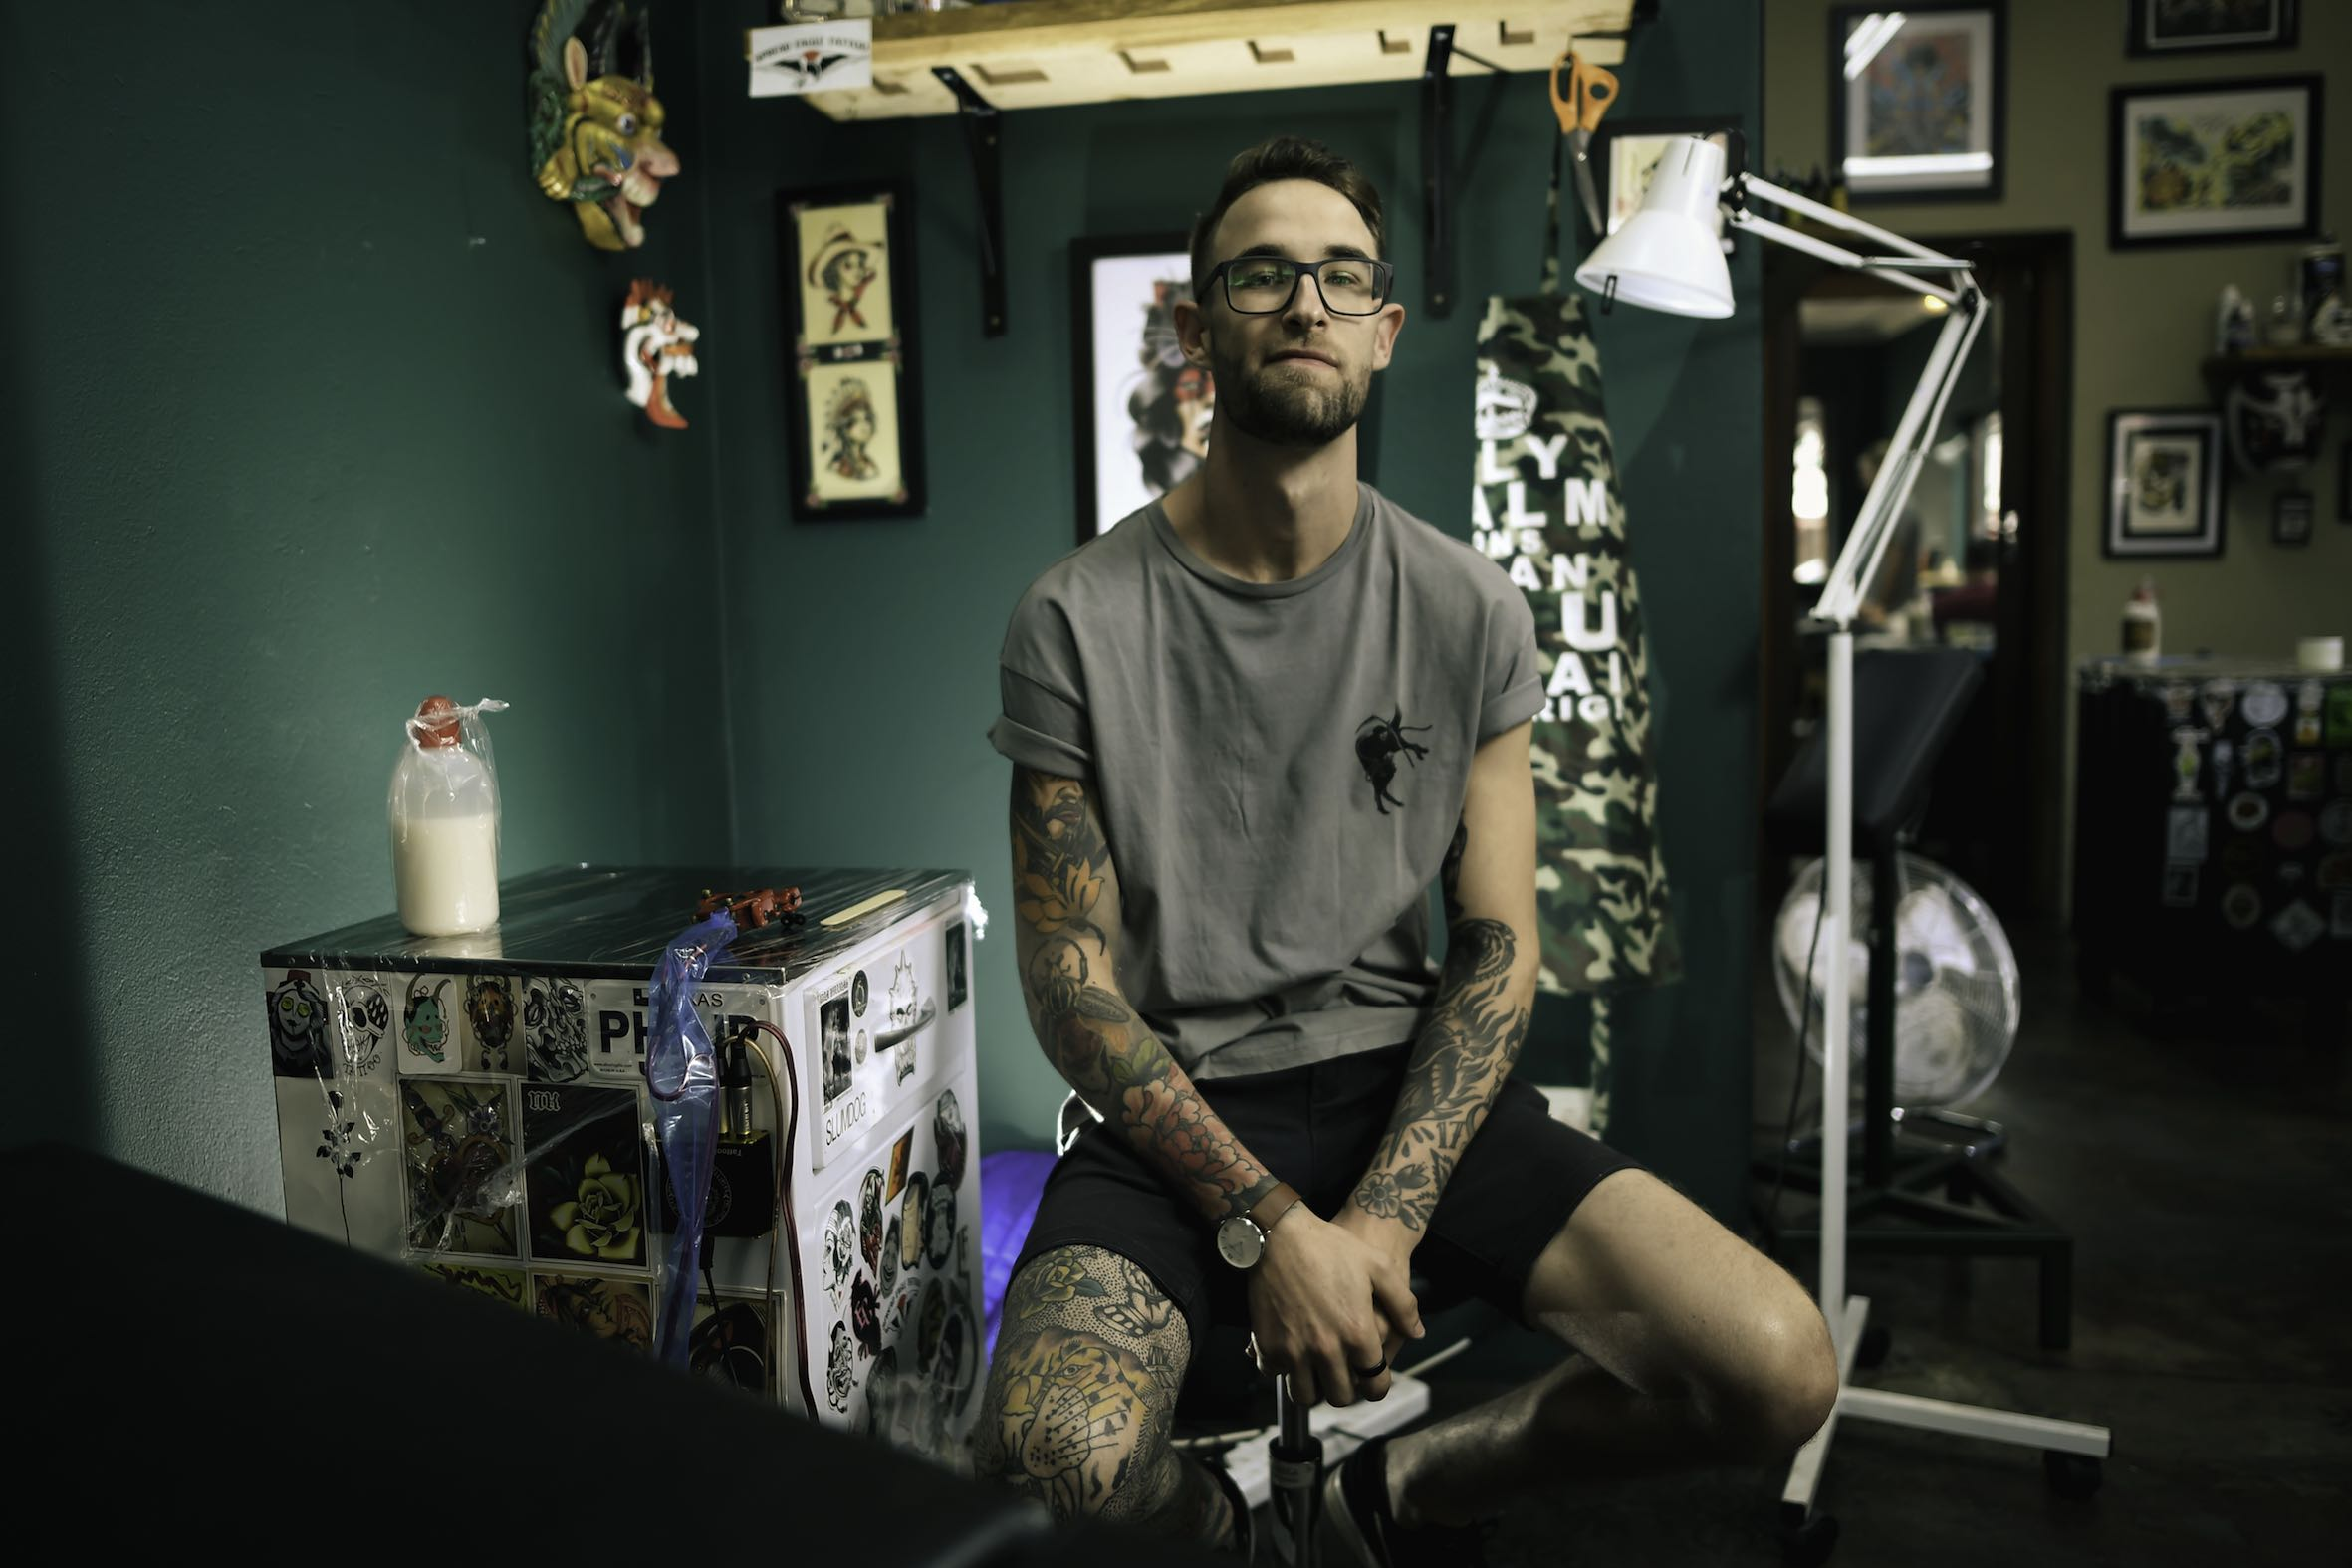 Meet Phillip Wells as our Tattoo Artist of the Week